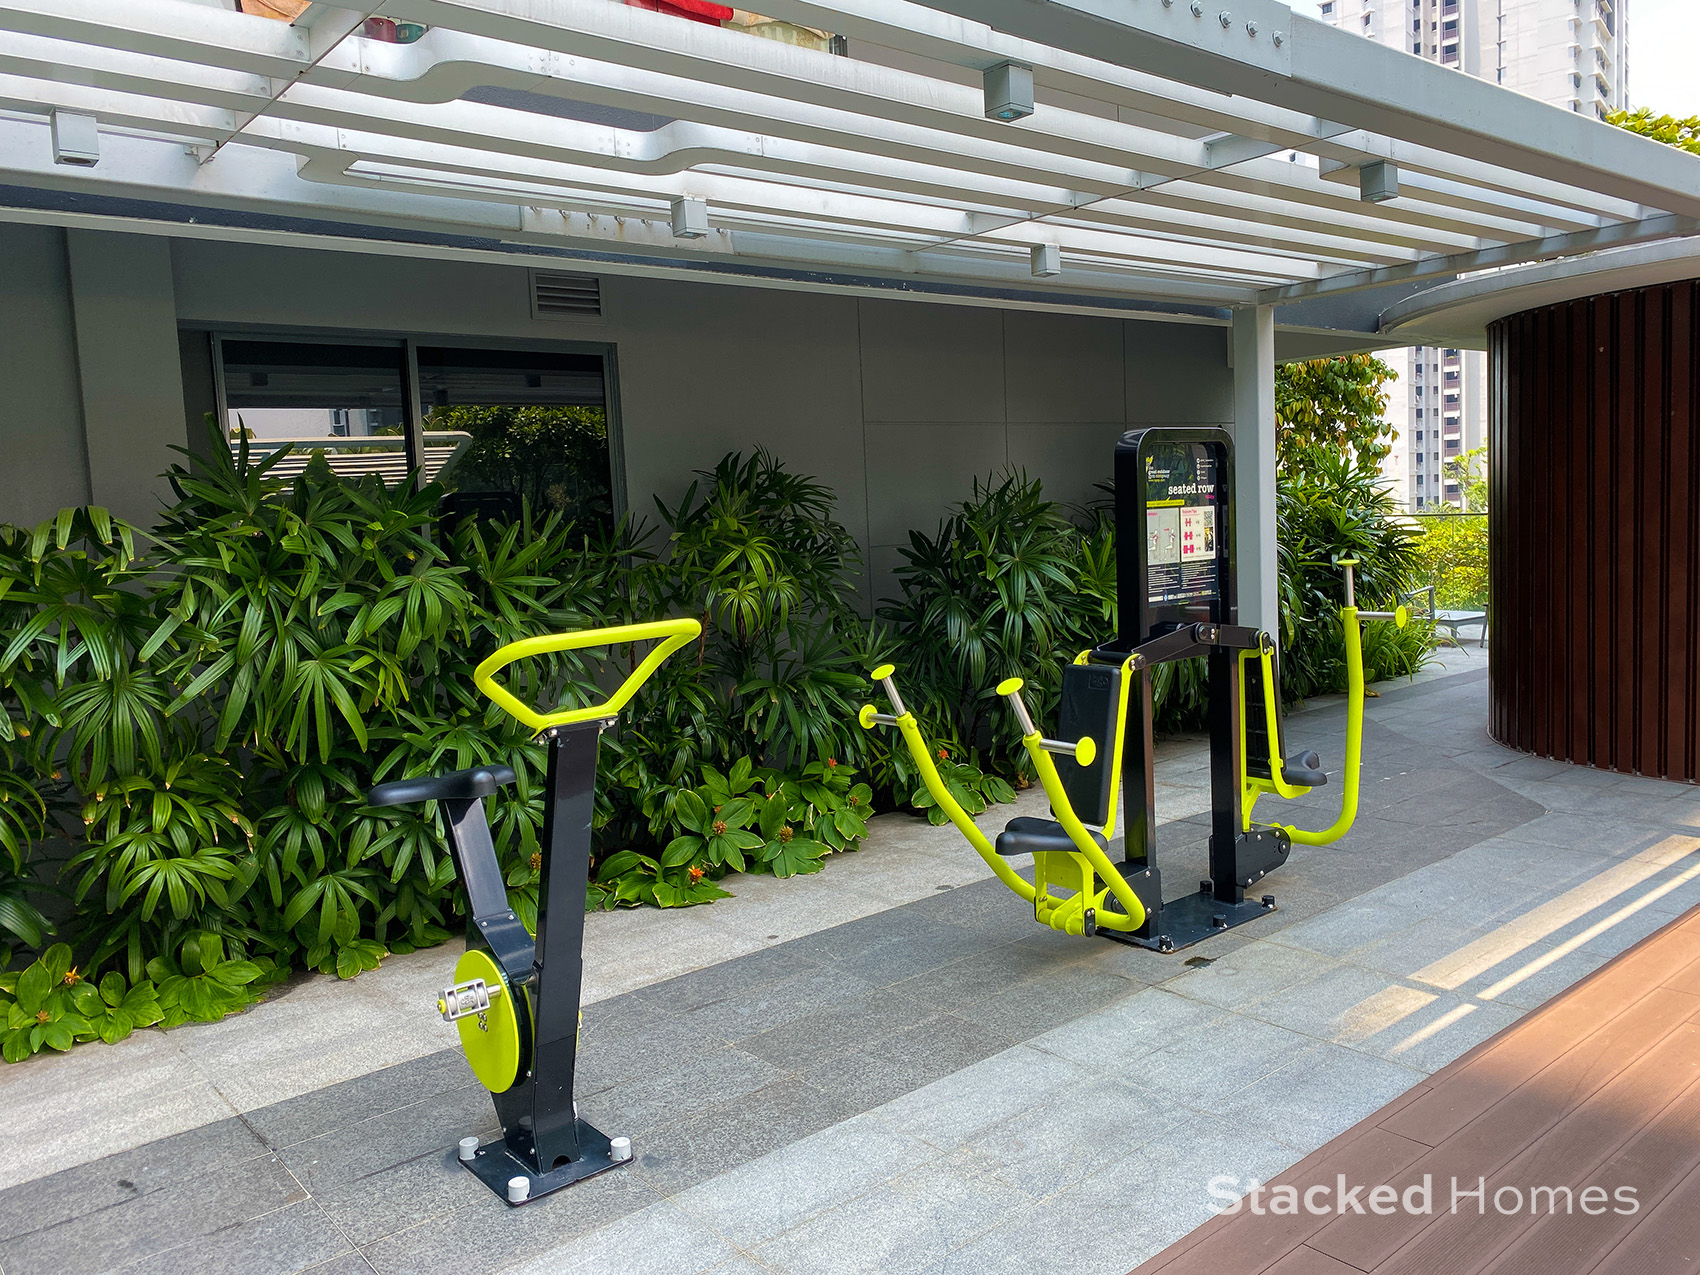 onze tanjong pagar outdoor fitness station